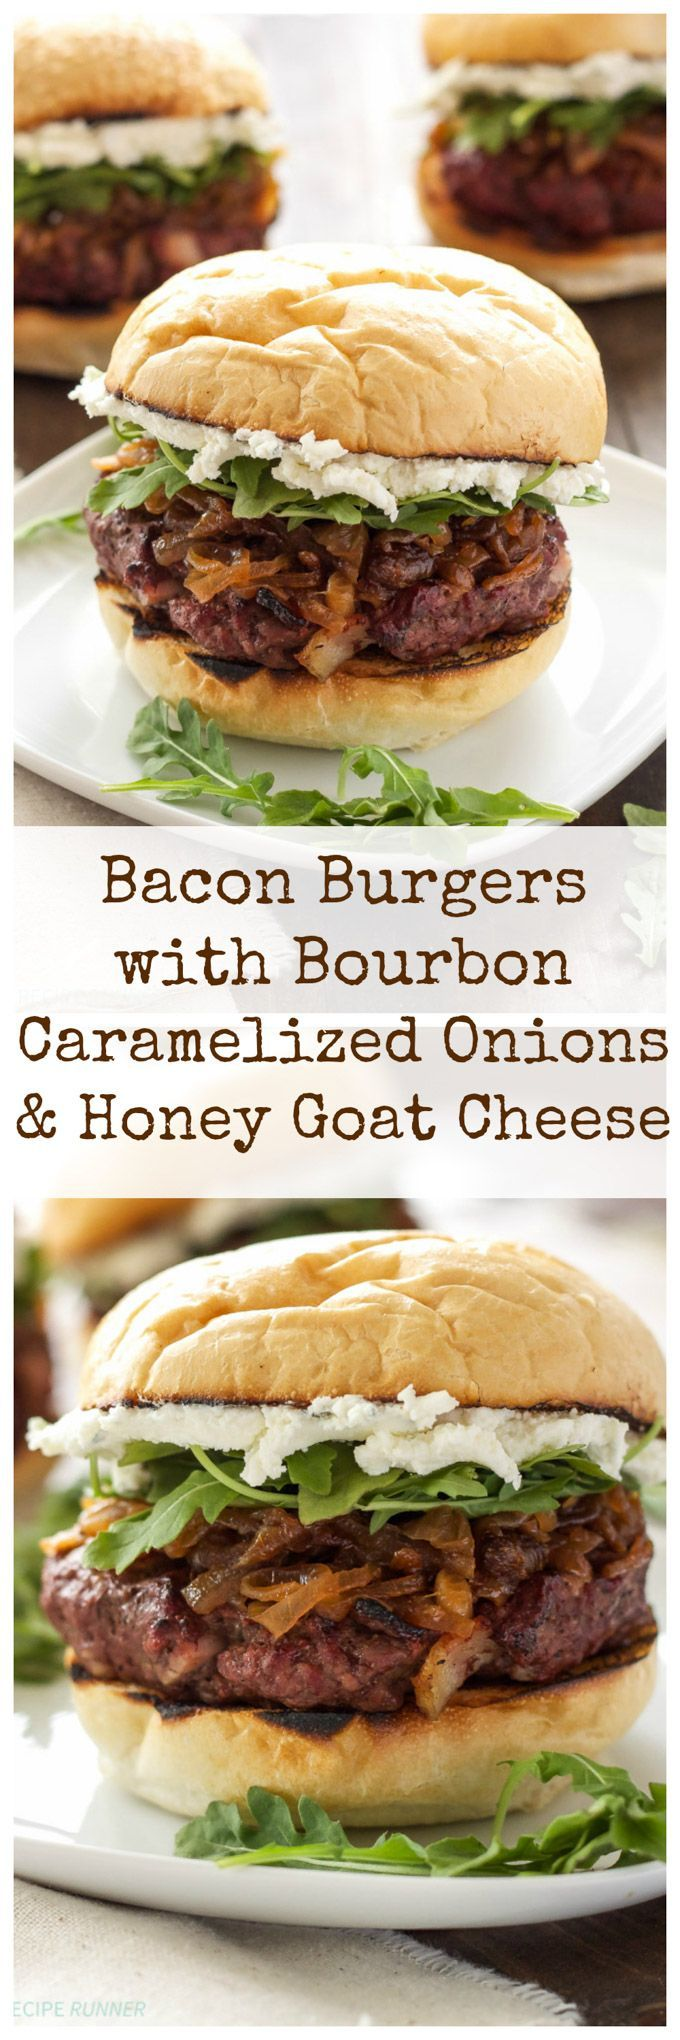 Bacon Burgers with Bourbon Caramelized Onions & Honey Goat Cheese + A SABER…